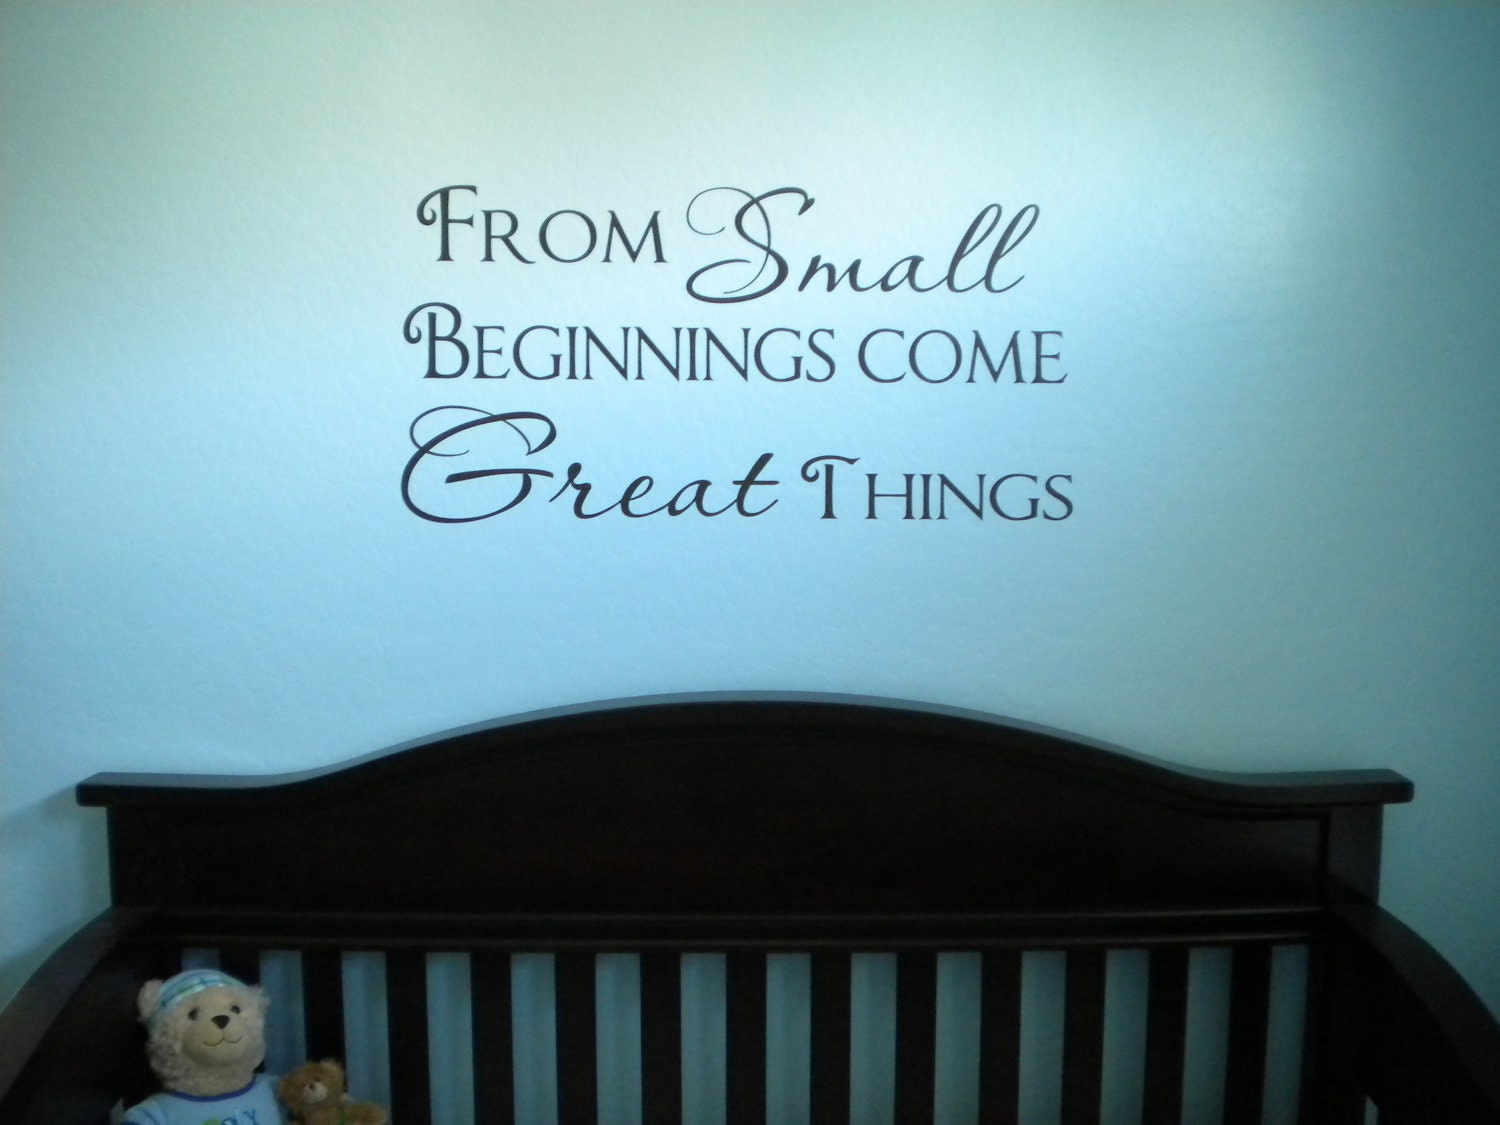 from small beginnings - photo #2